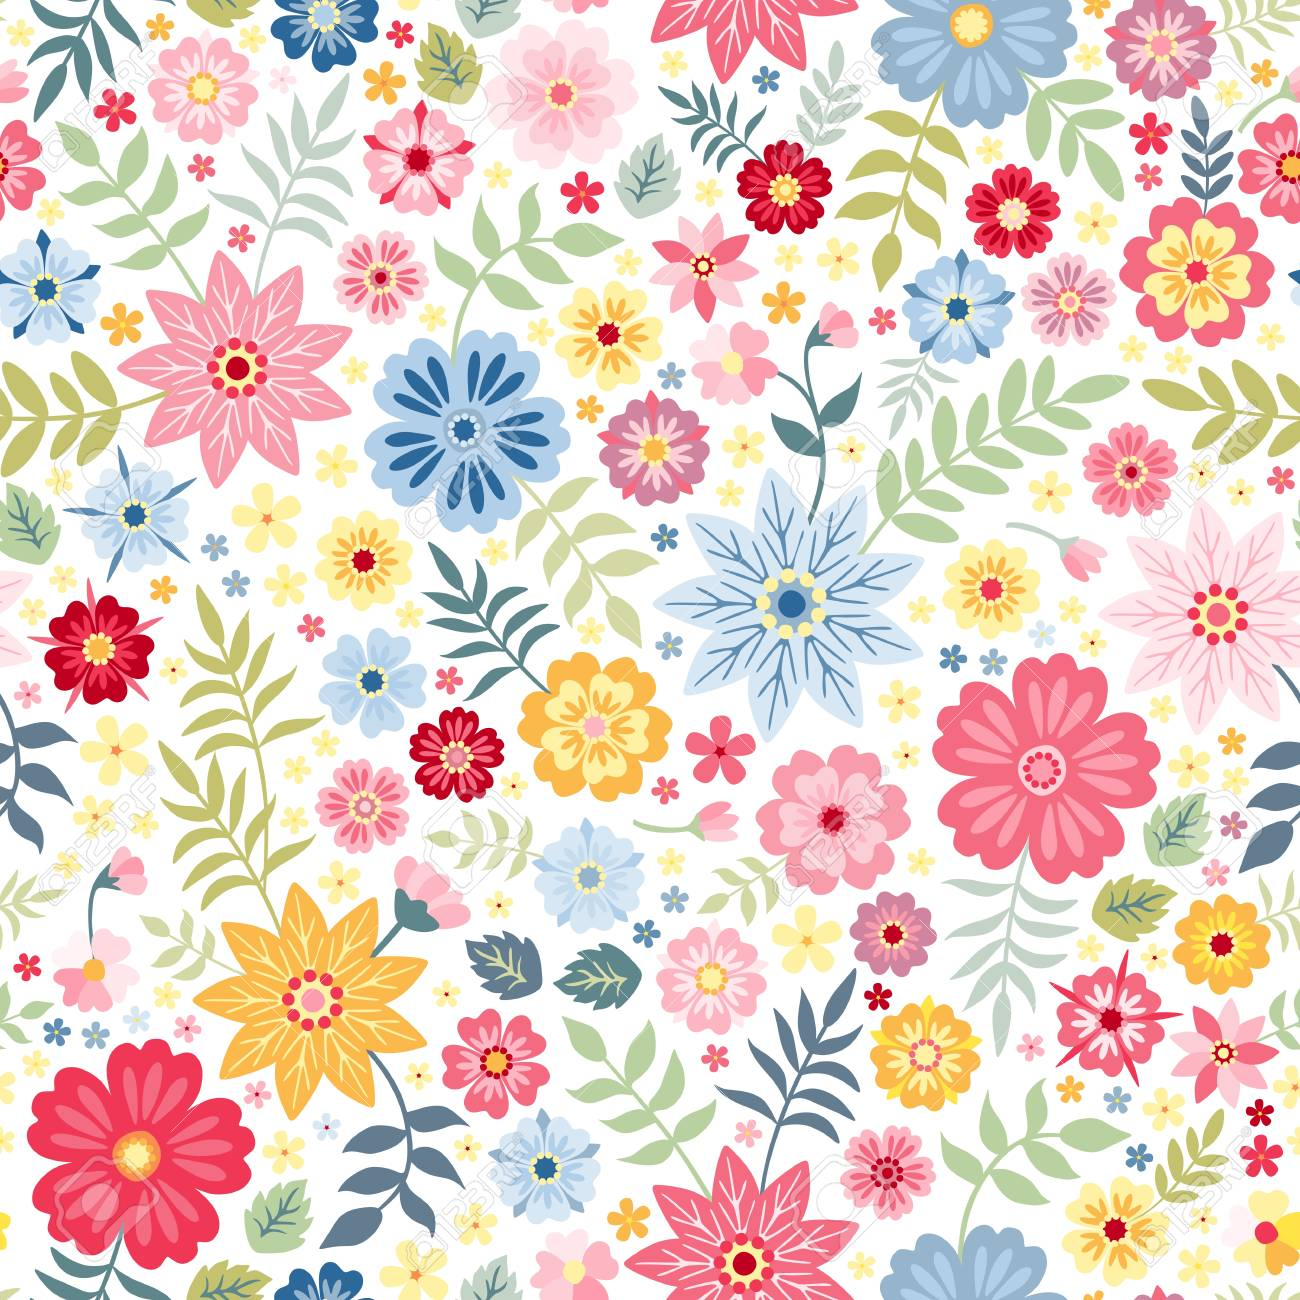 Seamless Ditsy Floral Pattern With Cute Little Flowers On White